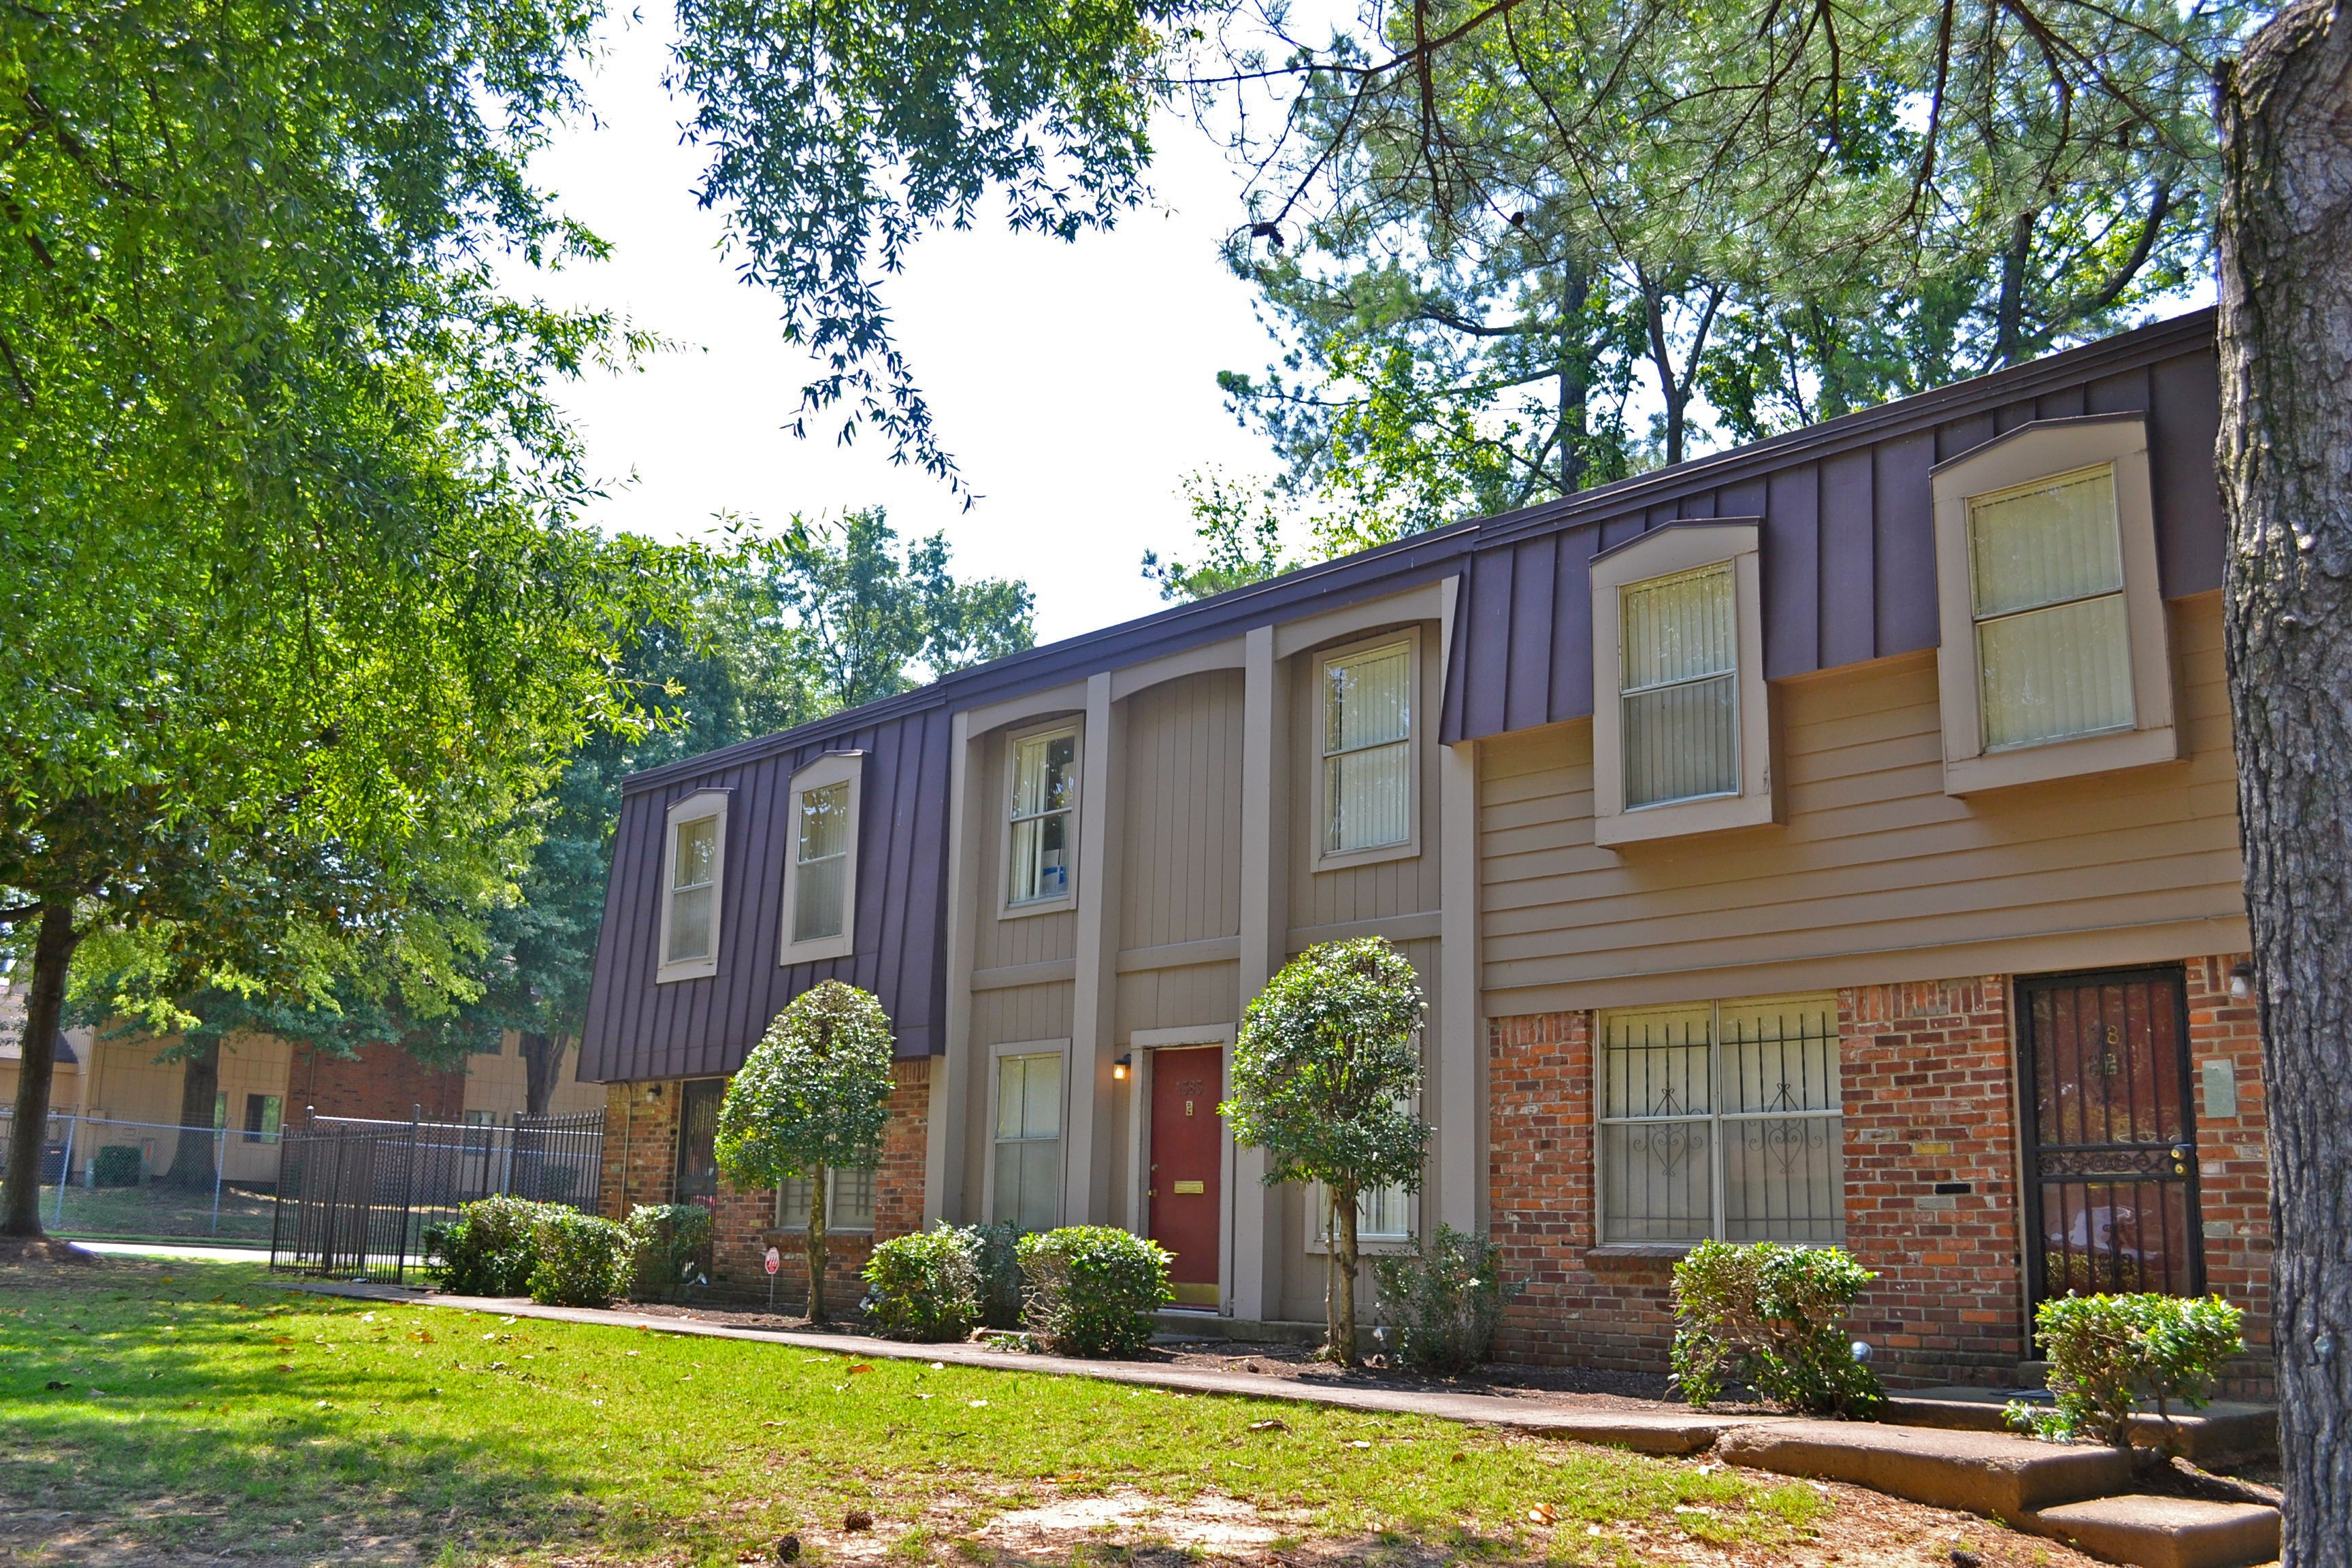 Hillcrest Apartments in the Whitehaven area of Memphis TN